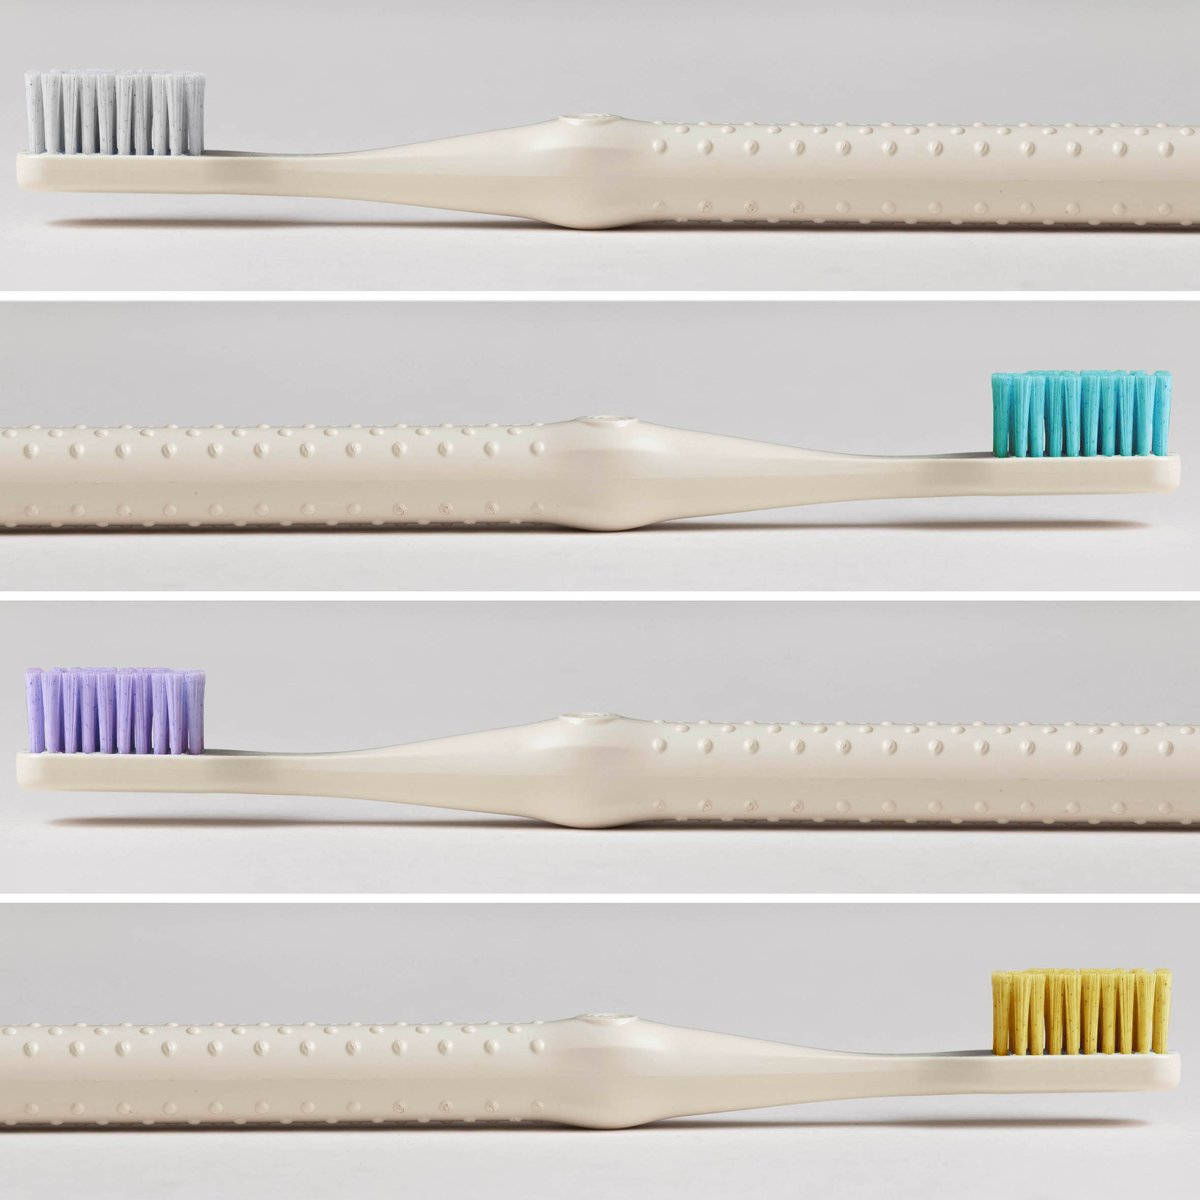 Looking for #ZeroWaste solutions without changing your habits? The Reswirl toothbrush is eco-friendly, biodegradable and completely remouldable. Send your old brushes back for a guaranteed zero waste product. Get it here: http://ow.ly/C1Be50zYwDo  #Kickstarter  #PlasticPollutionpic.twitter.com/x1n4IvaW7R